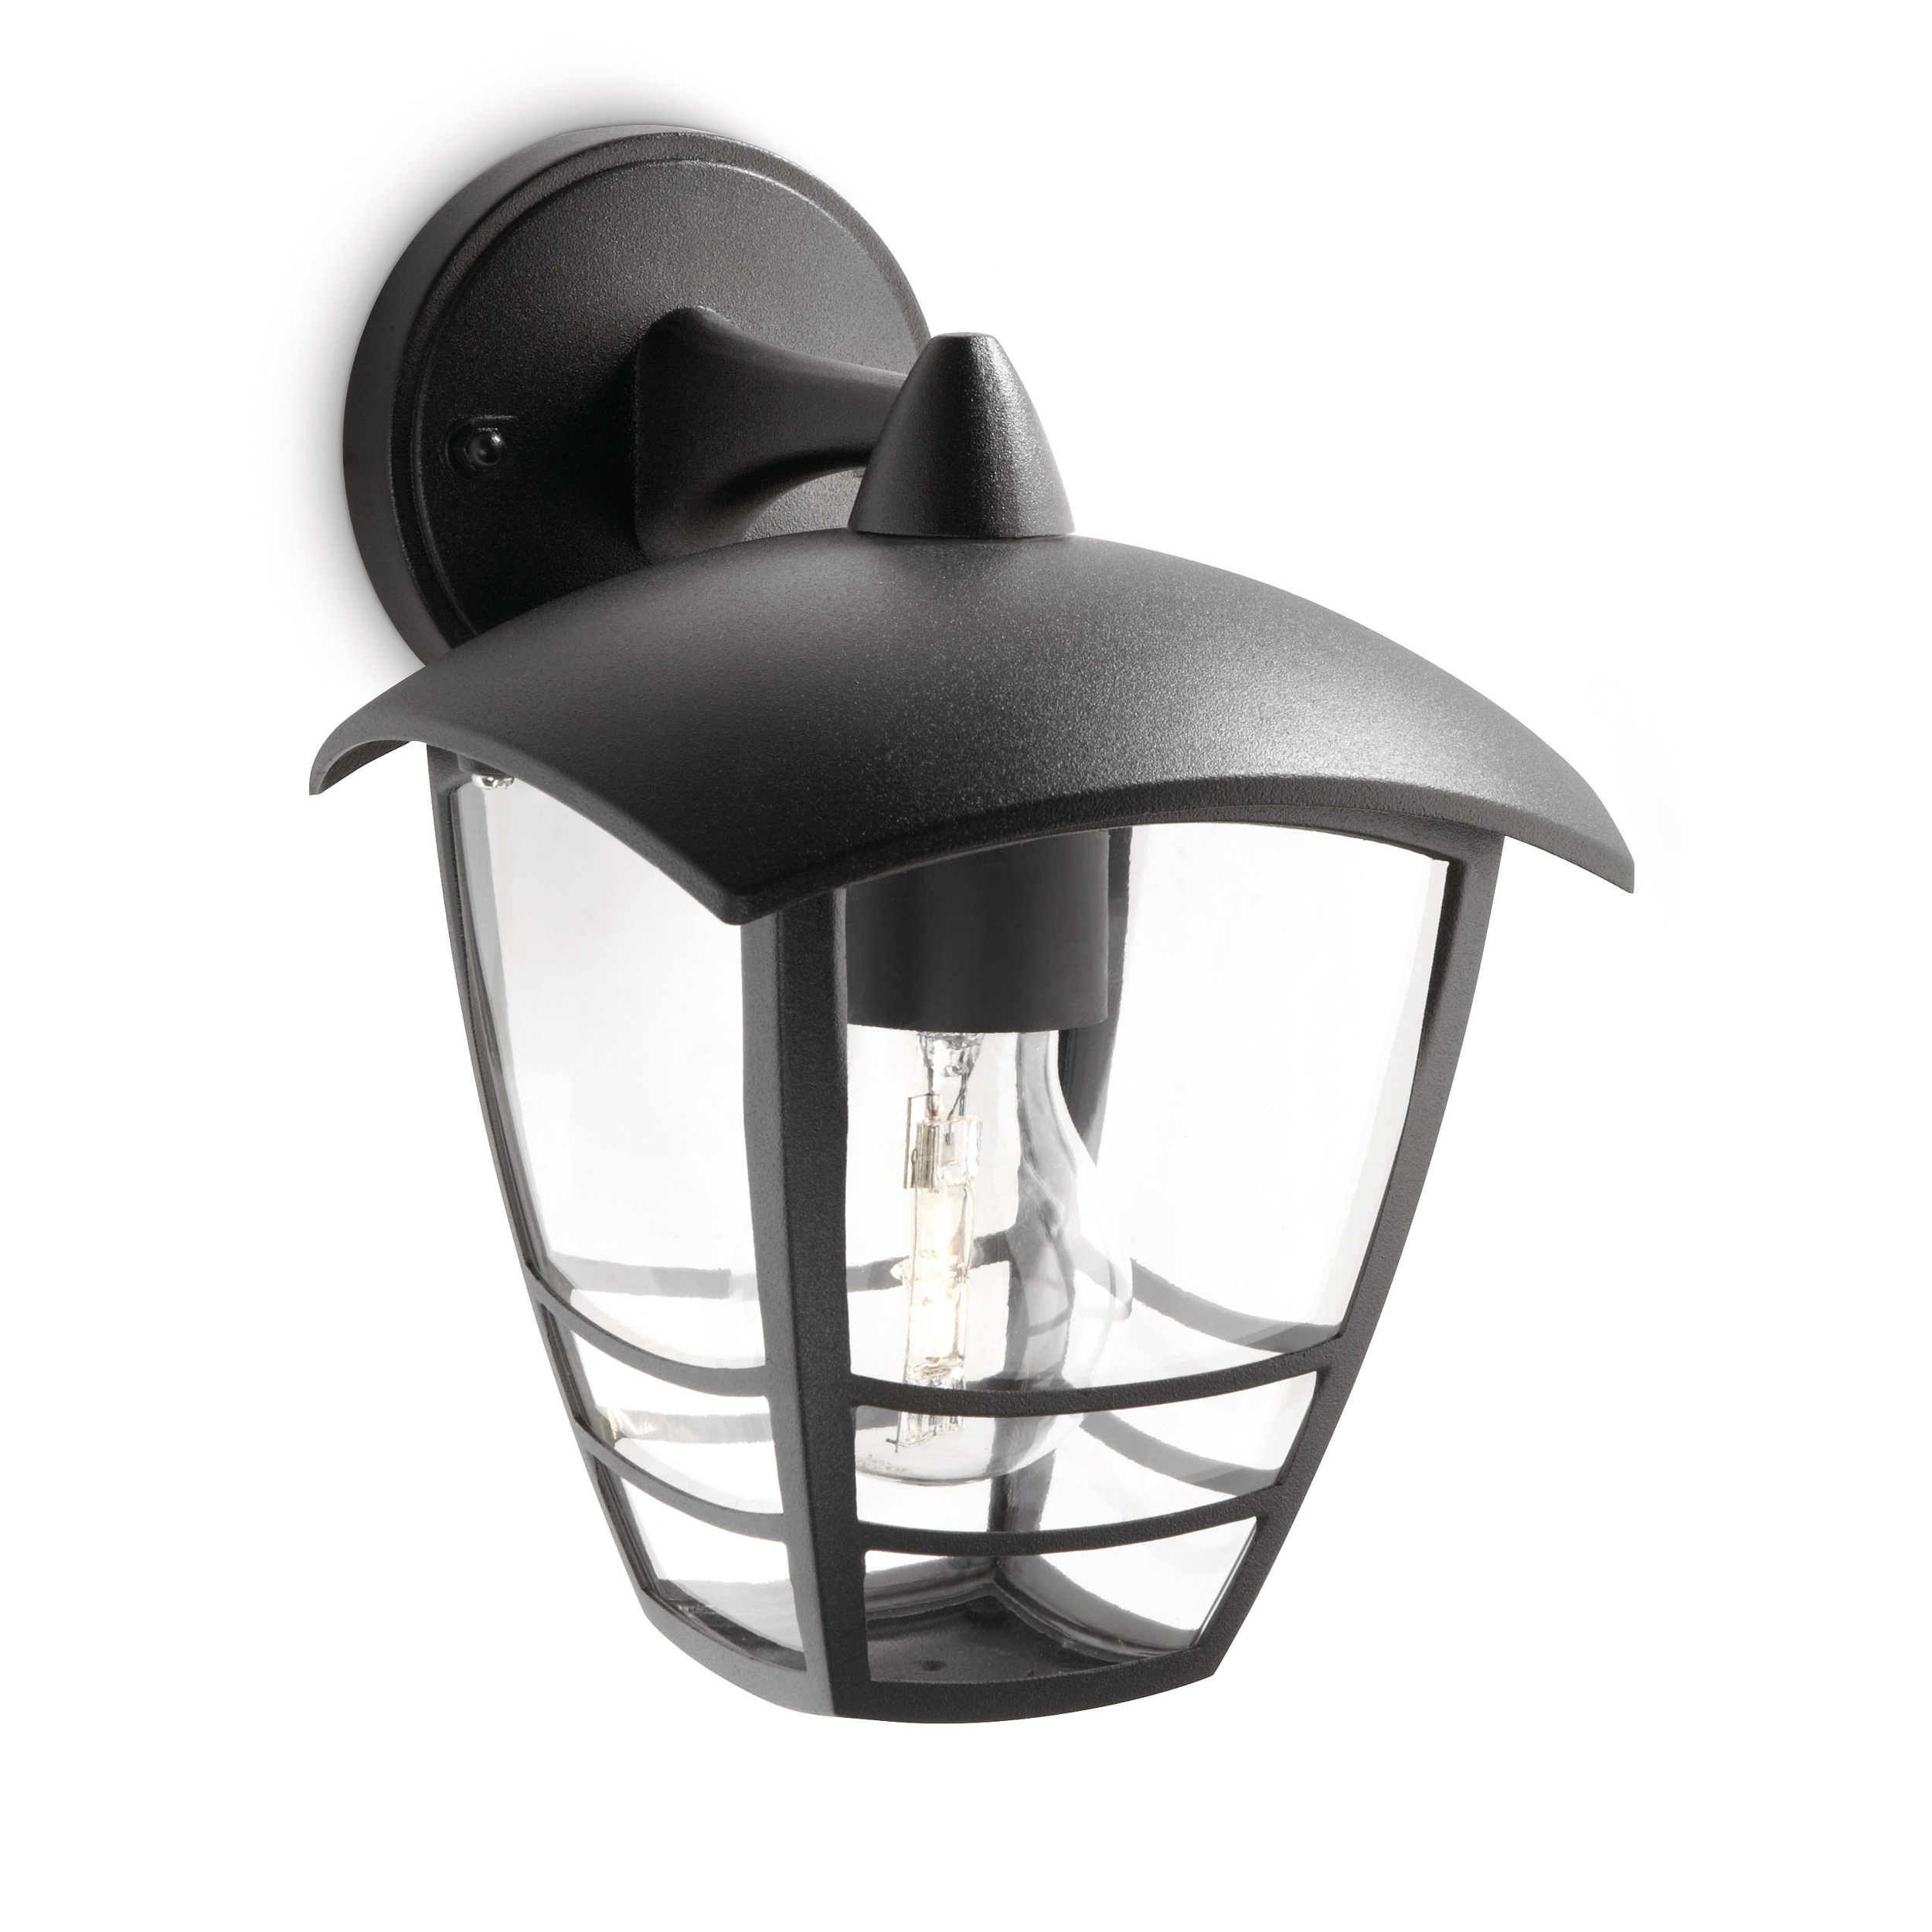 Philips myGarden Weather Proof Wall Light Outdoor Lamp Heritage 153813016 eBay